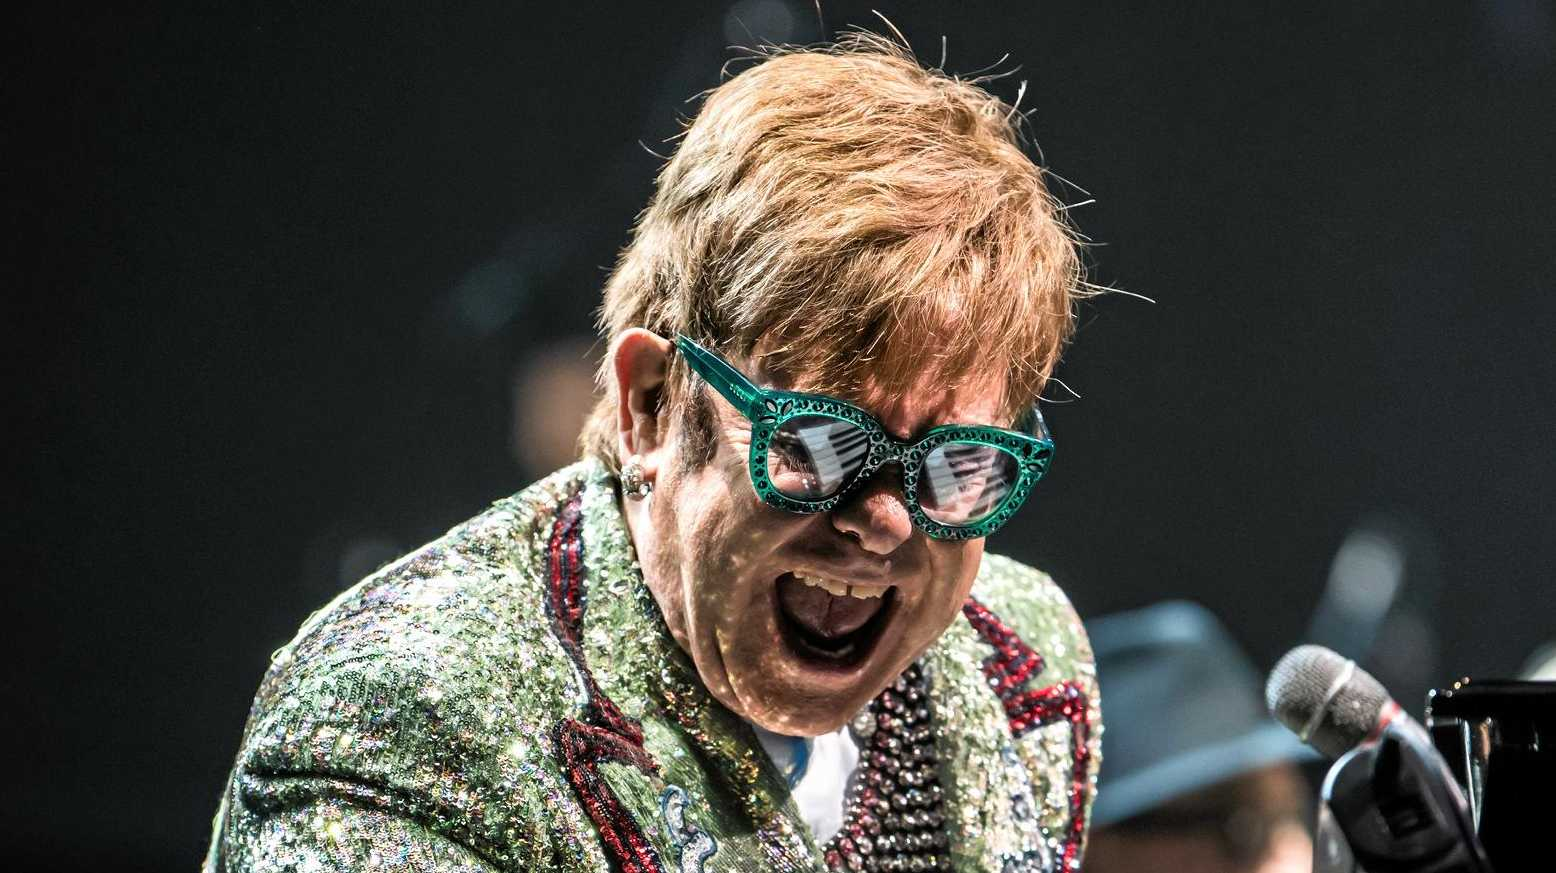 Elton John is coming to the Sunshine Coast, performing at the stadium in March 2020.